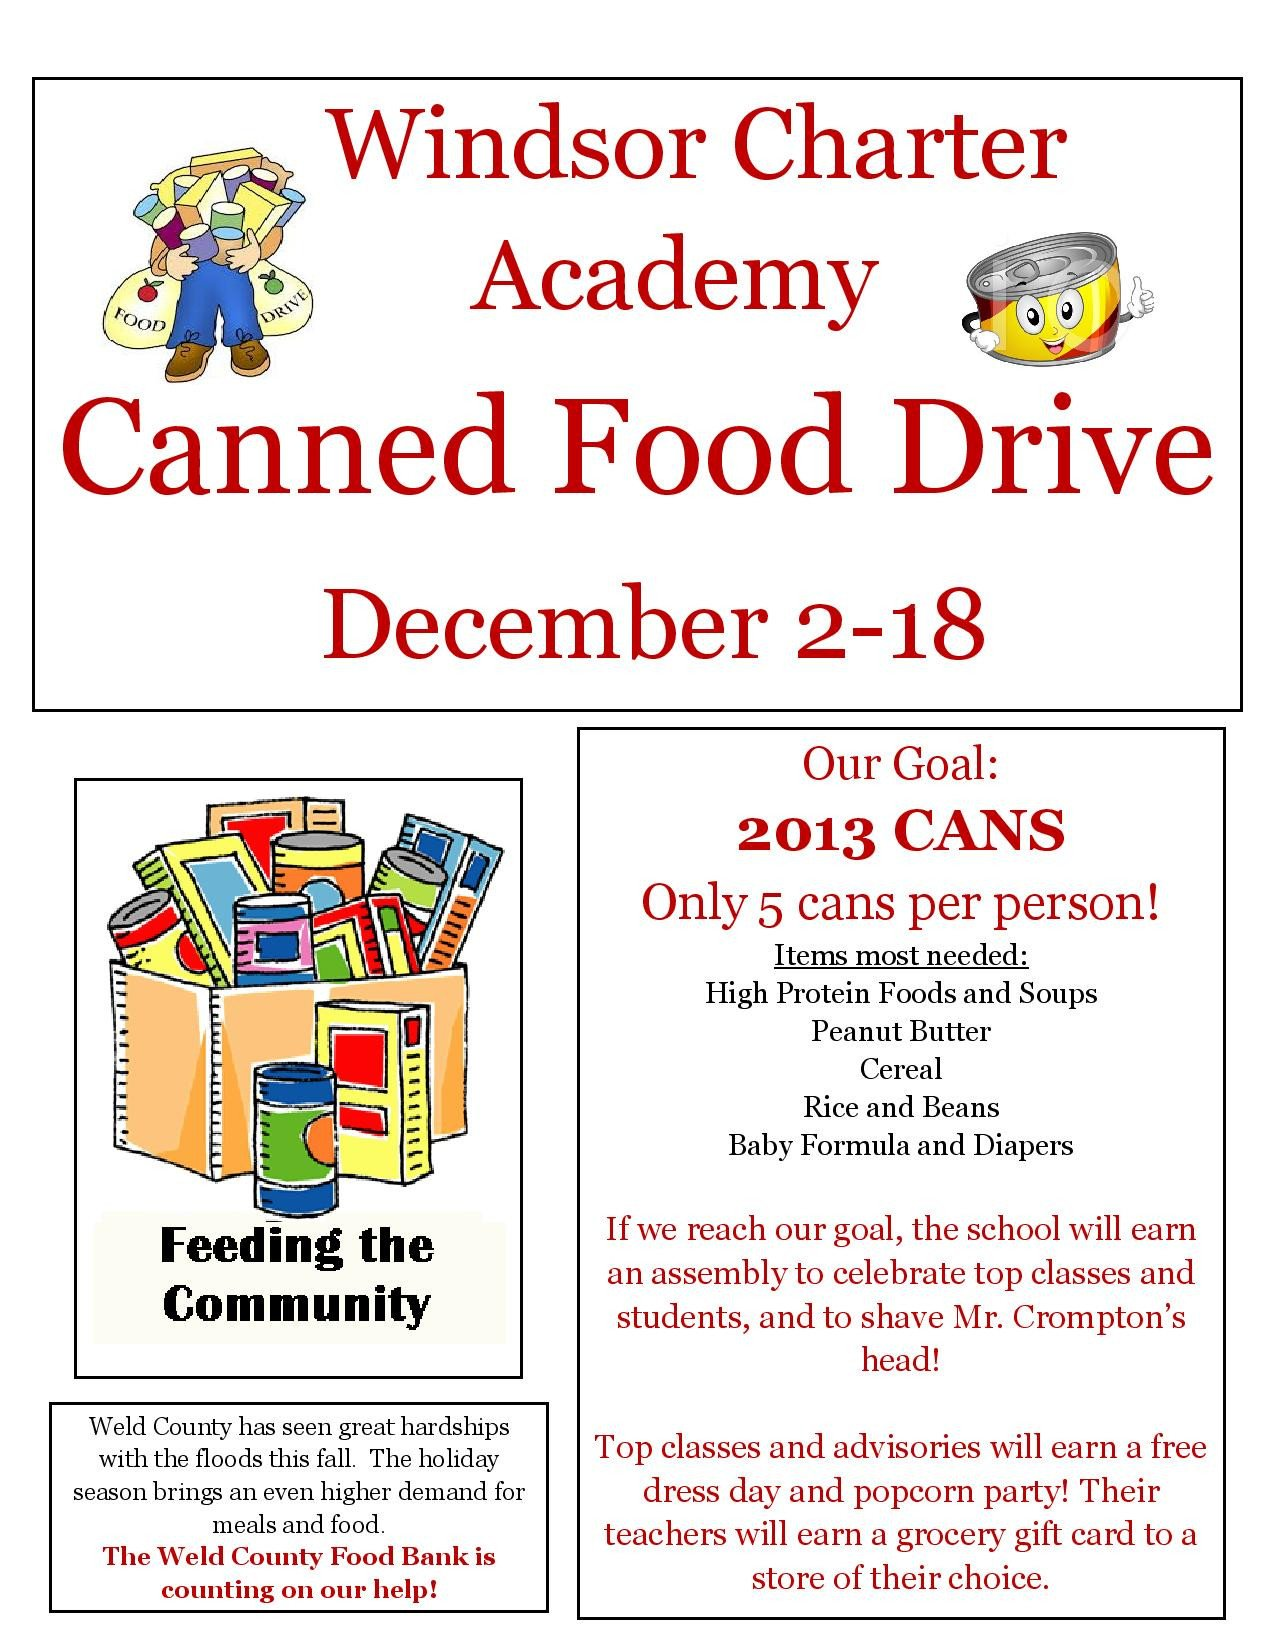 Canned Food Drive Flyer Template Can Food Drive Flyer Template to Pin On Pinterest